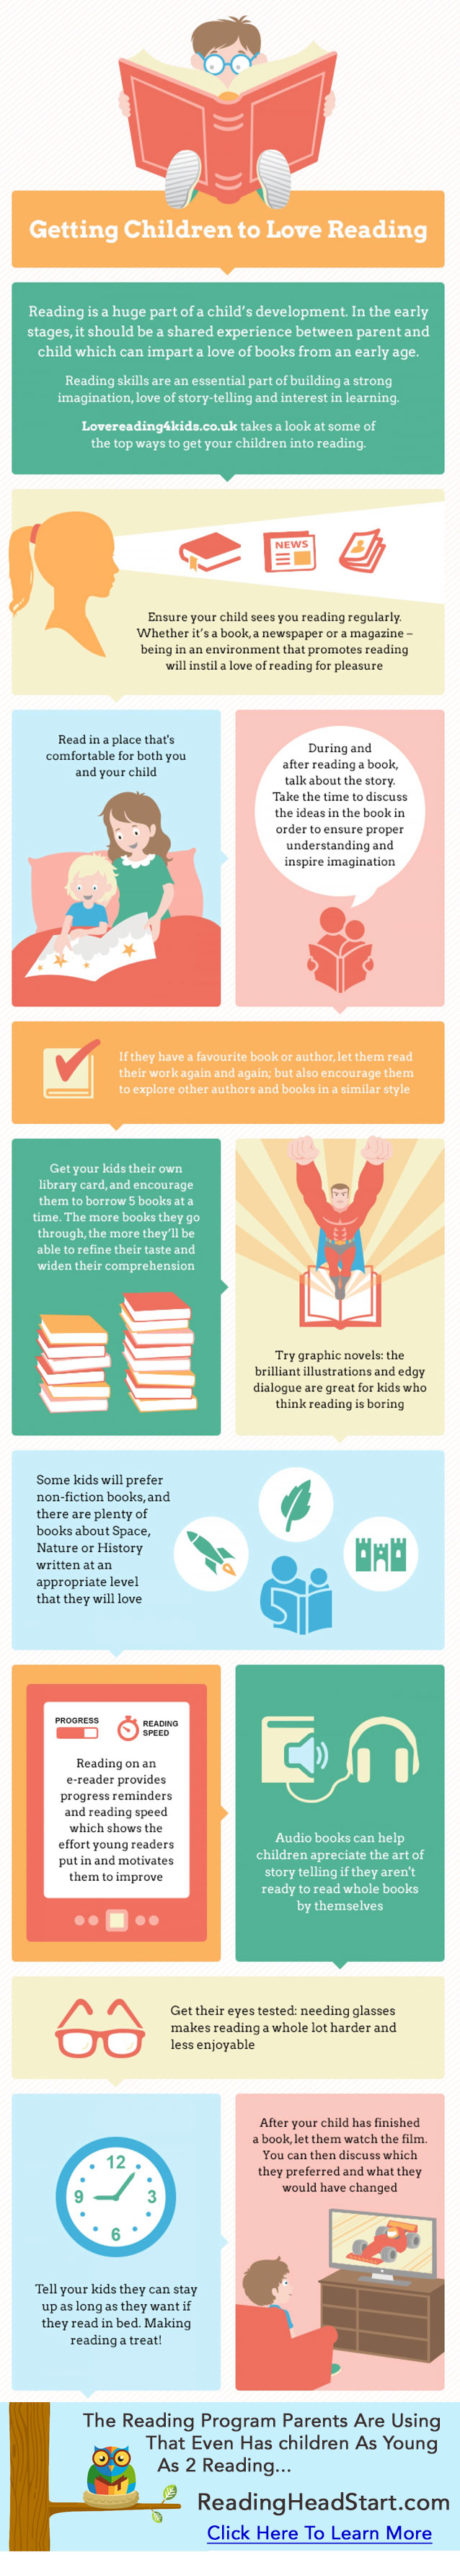 how to get your child interested in reading